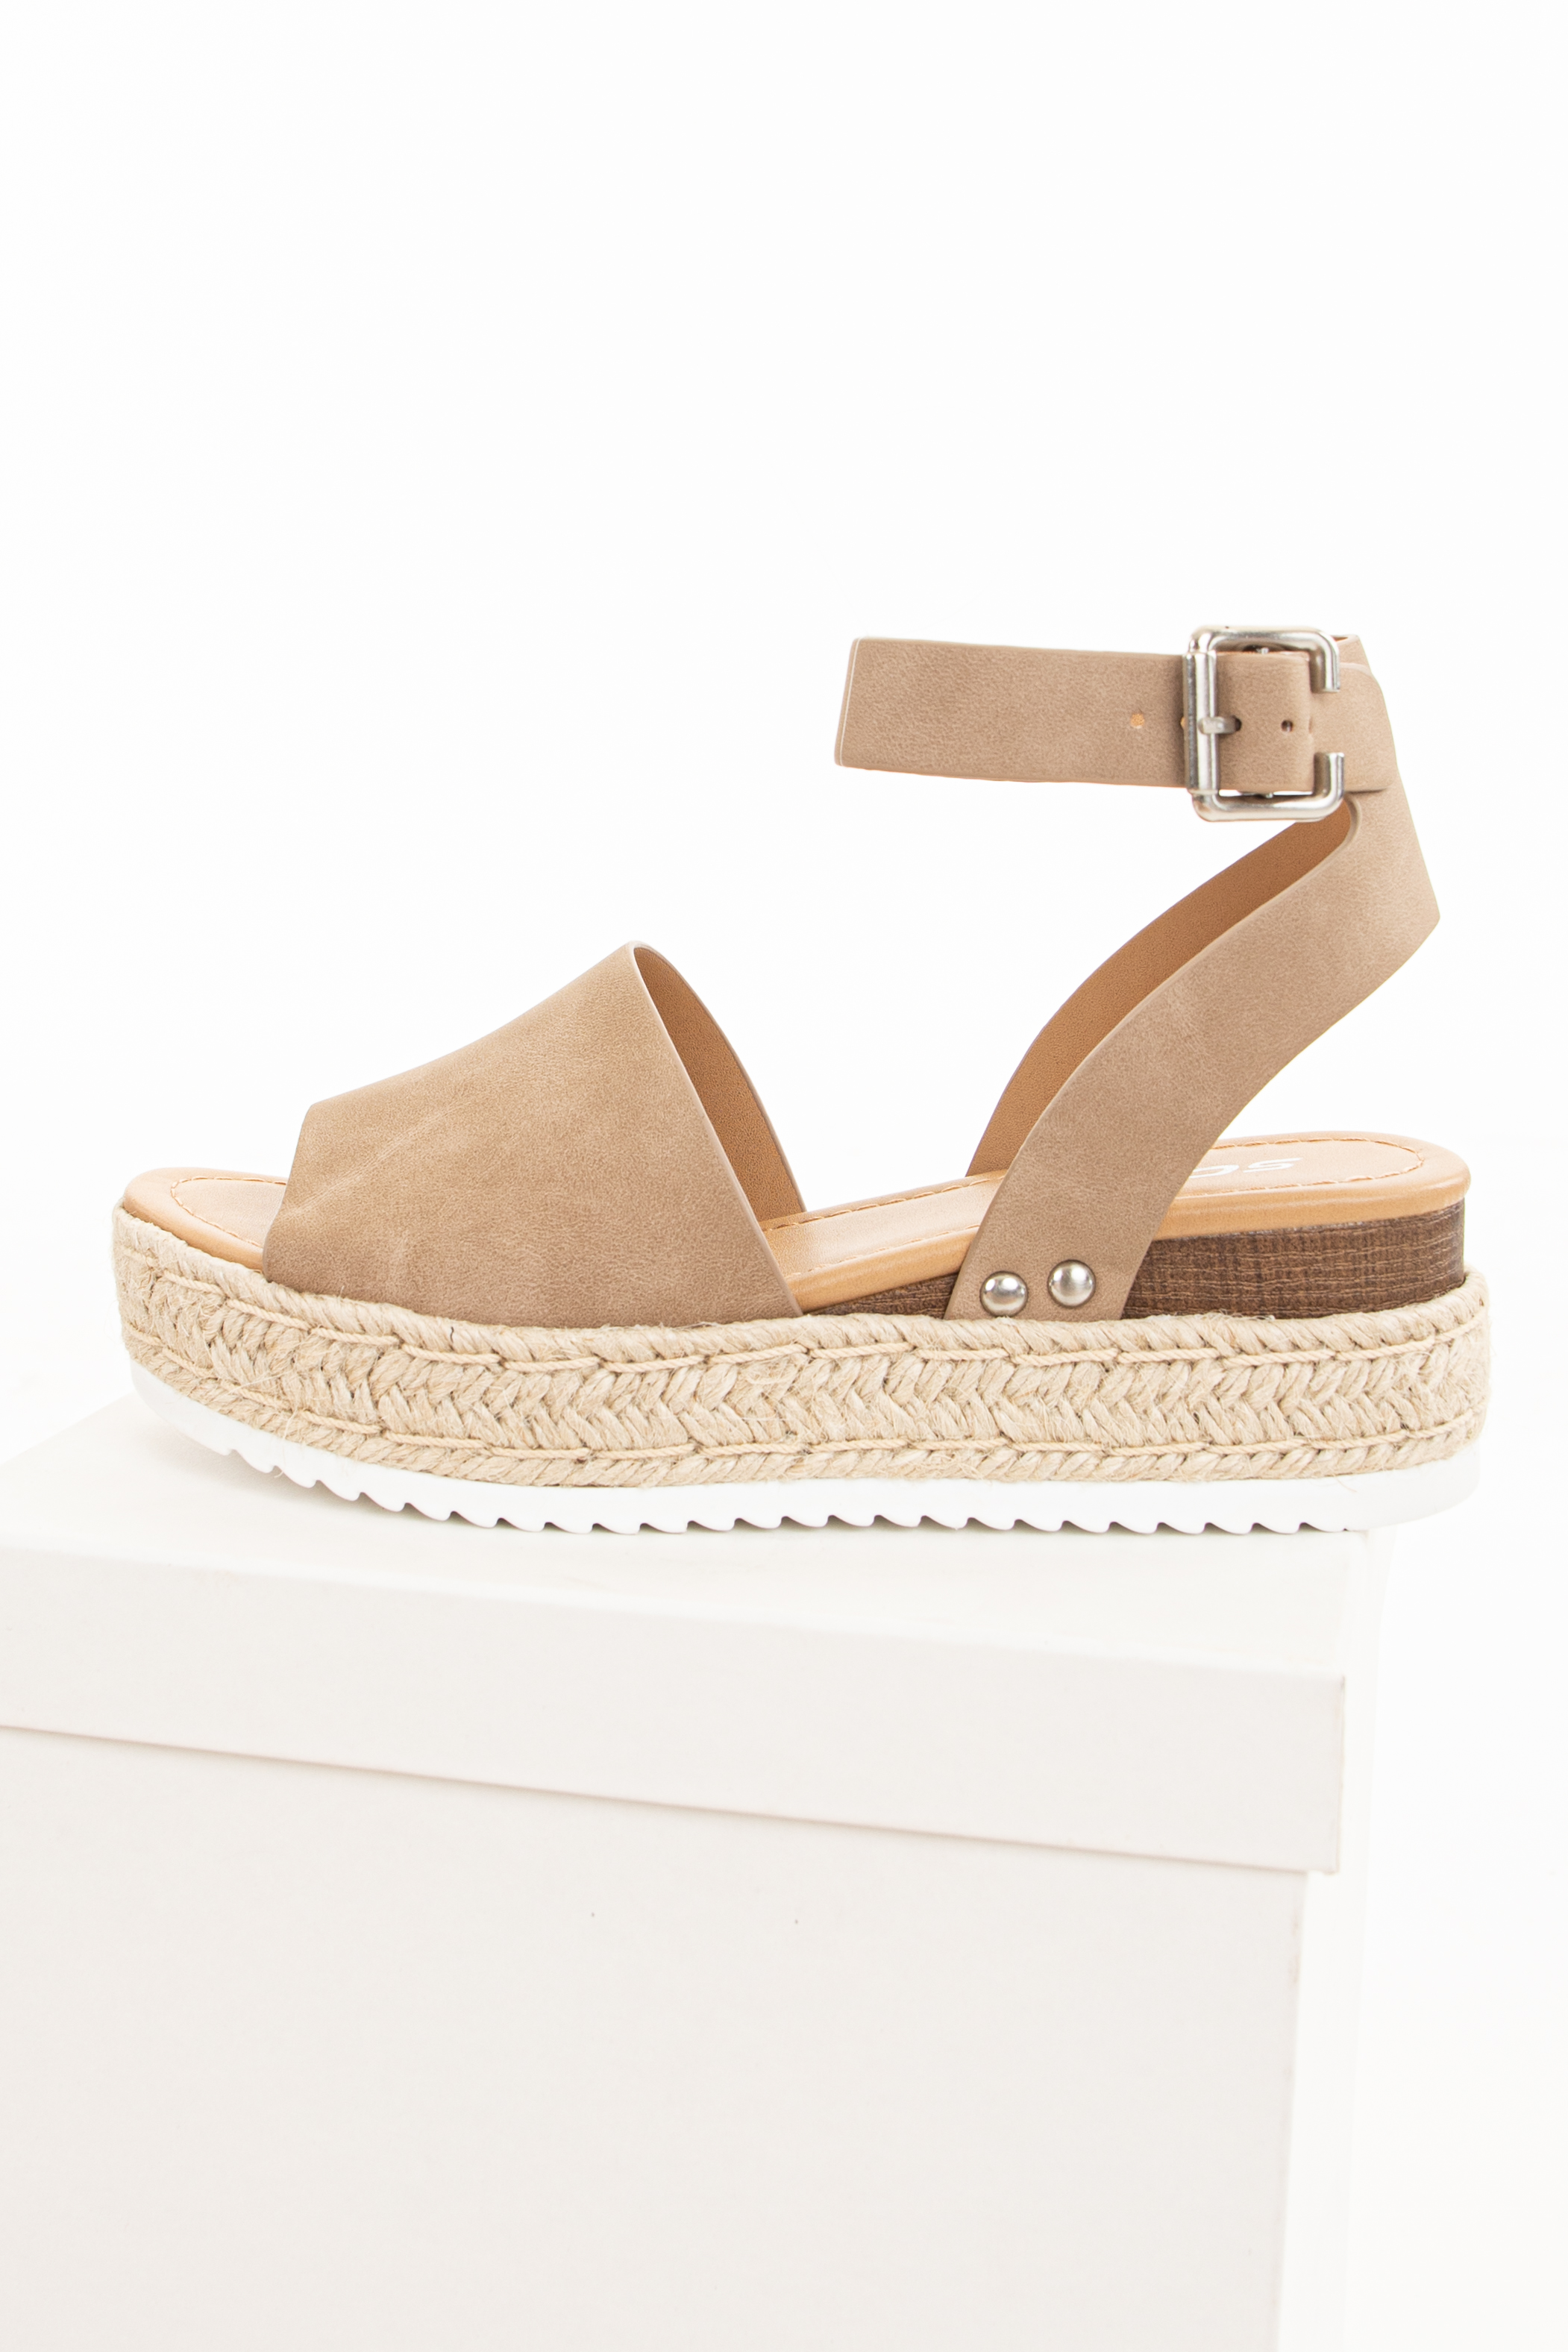 Latte Brown Espadrille Platform Sandals with Ankle Strap